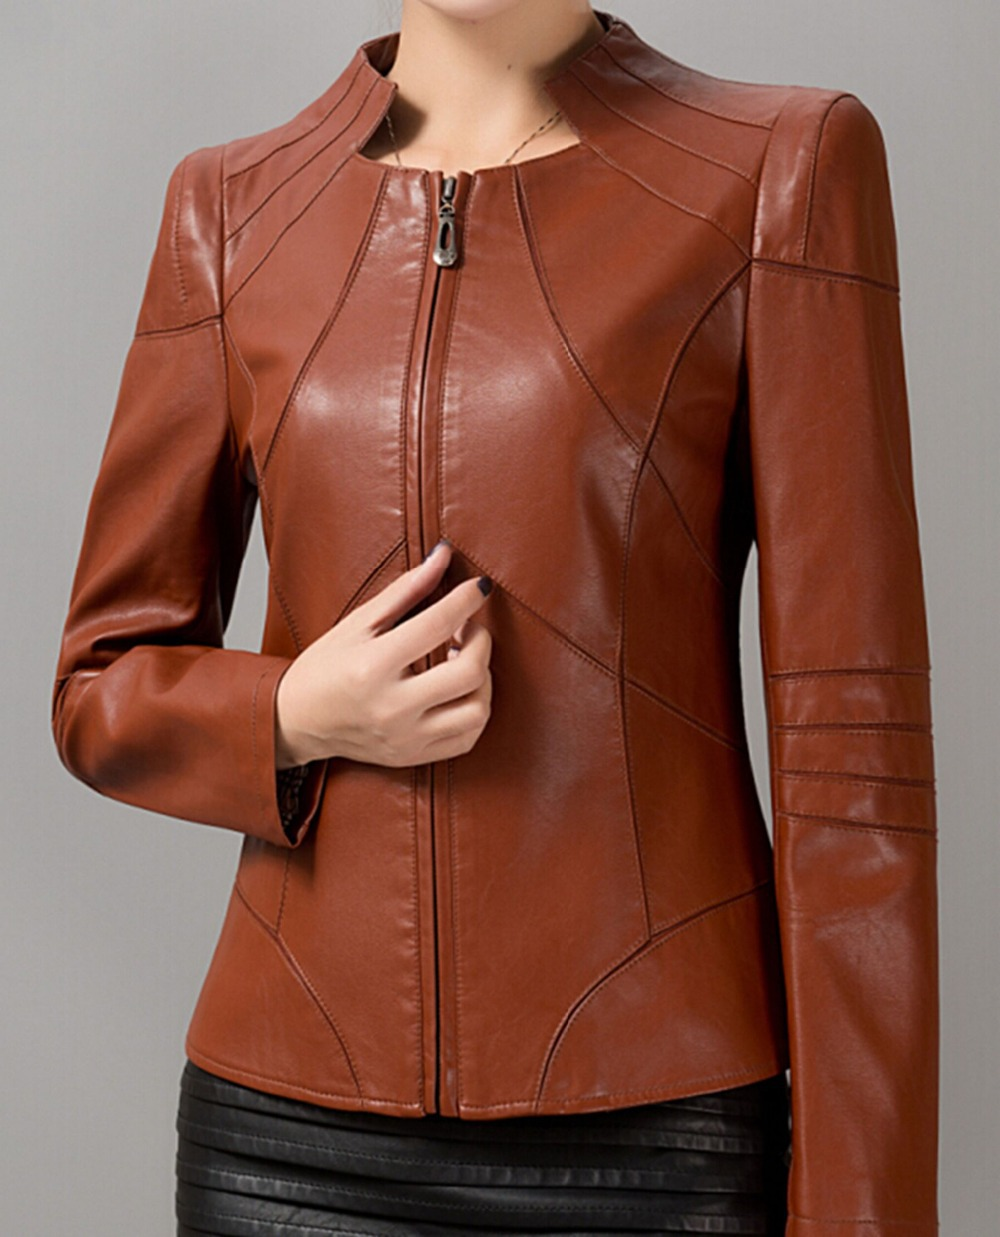 Women's Leather Outerwear and Accessories Regardless of what the weather conditions look like, making a fashion statement is a must when it comes to women's outerwear. Our extensive selection of women's jackets and accessories provide not only protection from the elements but warmth and style that are sure to make a statement.